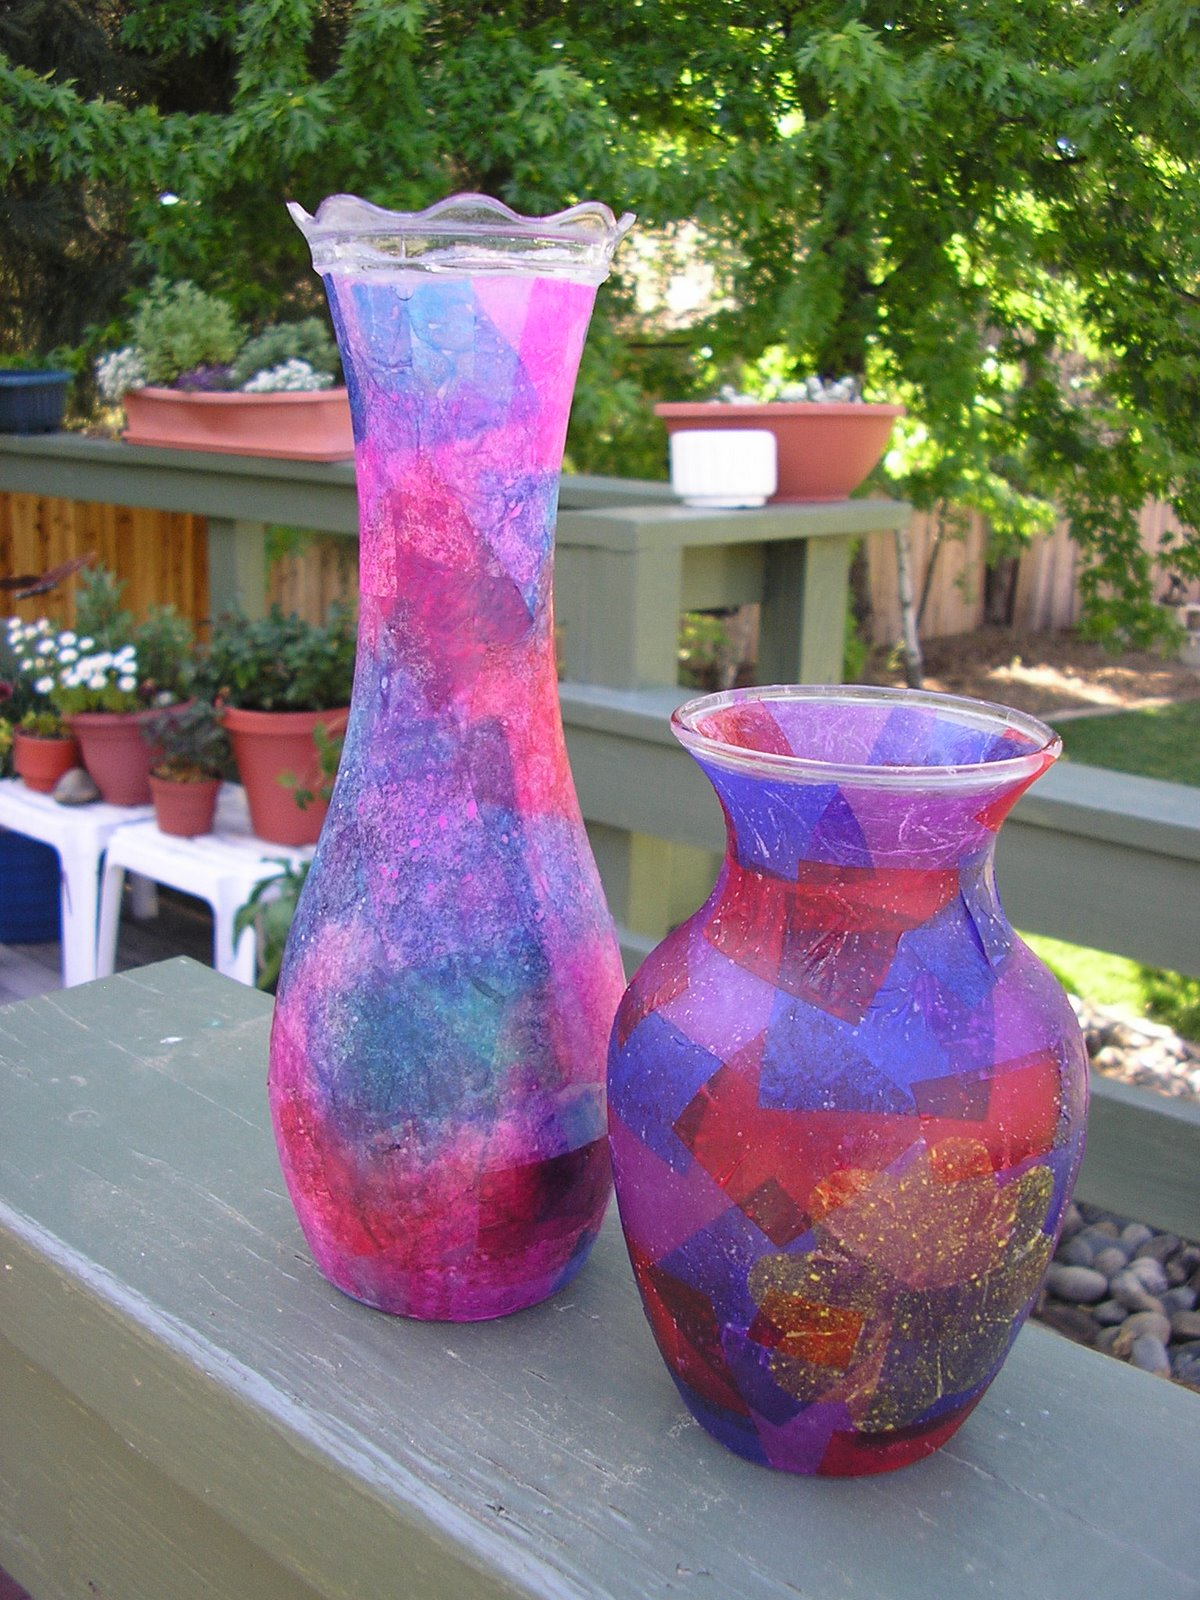 Tissue paper vase choice image vases design picture hearts and trees reviewsmspy reviewsmspy